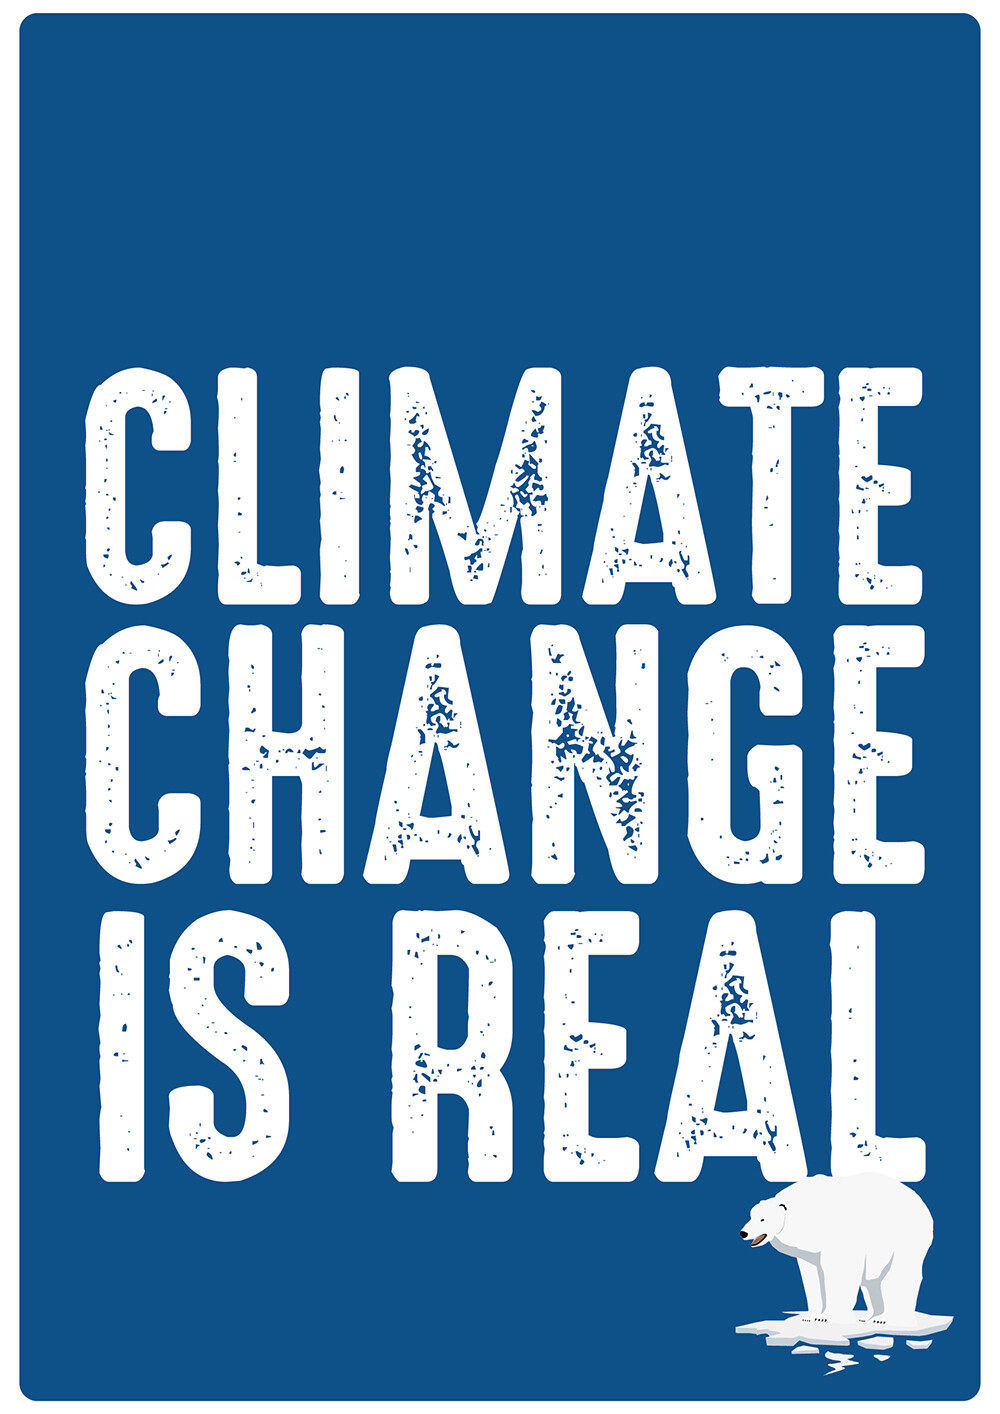 Rajesh r sawant climate change poster2 01